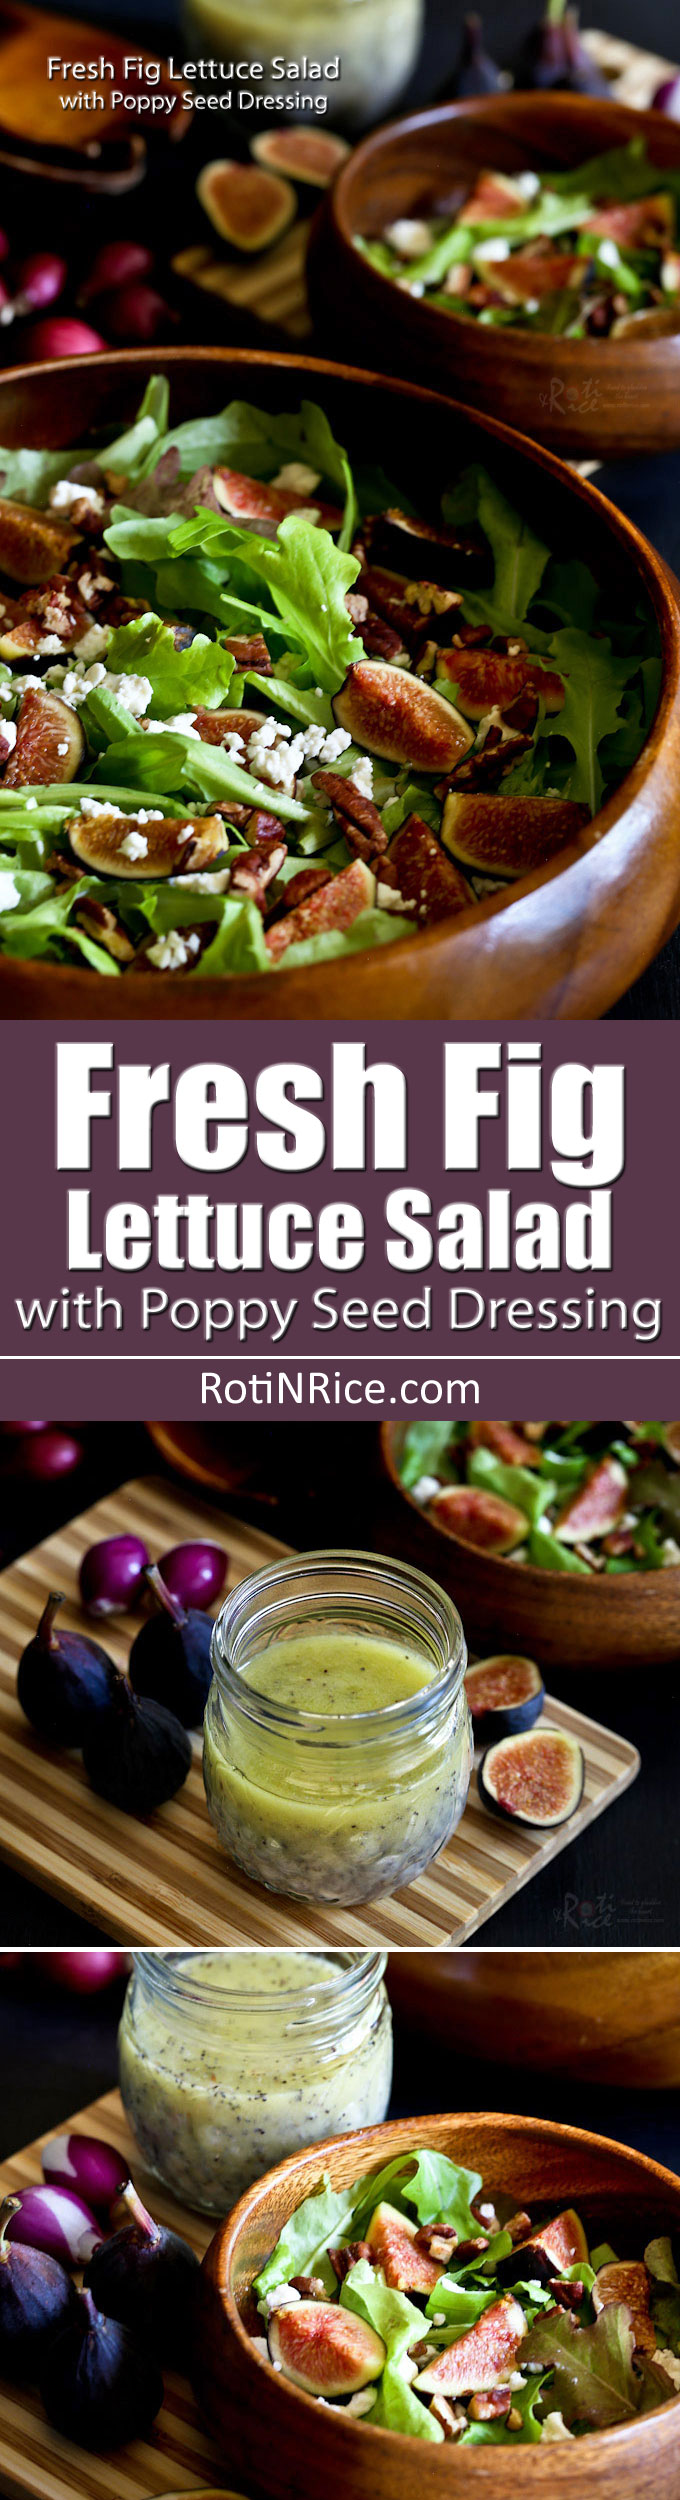 A combo of sweet and tart flavors and a variety of textures make this Fresh Fig Lettuce Salad with Poppy Seed Dressing a must-try when figs are in season. | RotiNRice.com